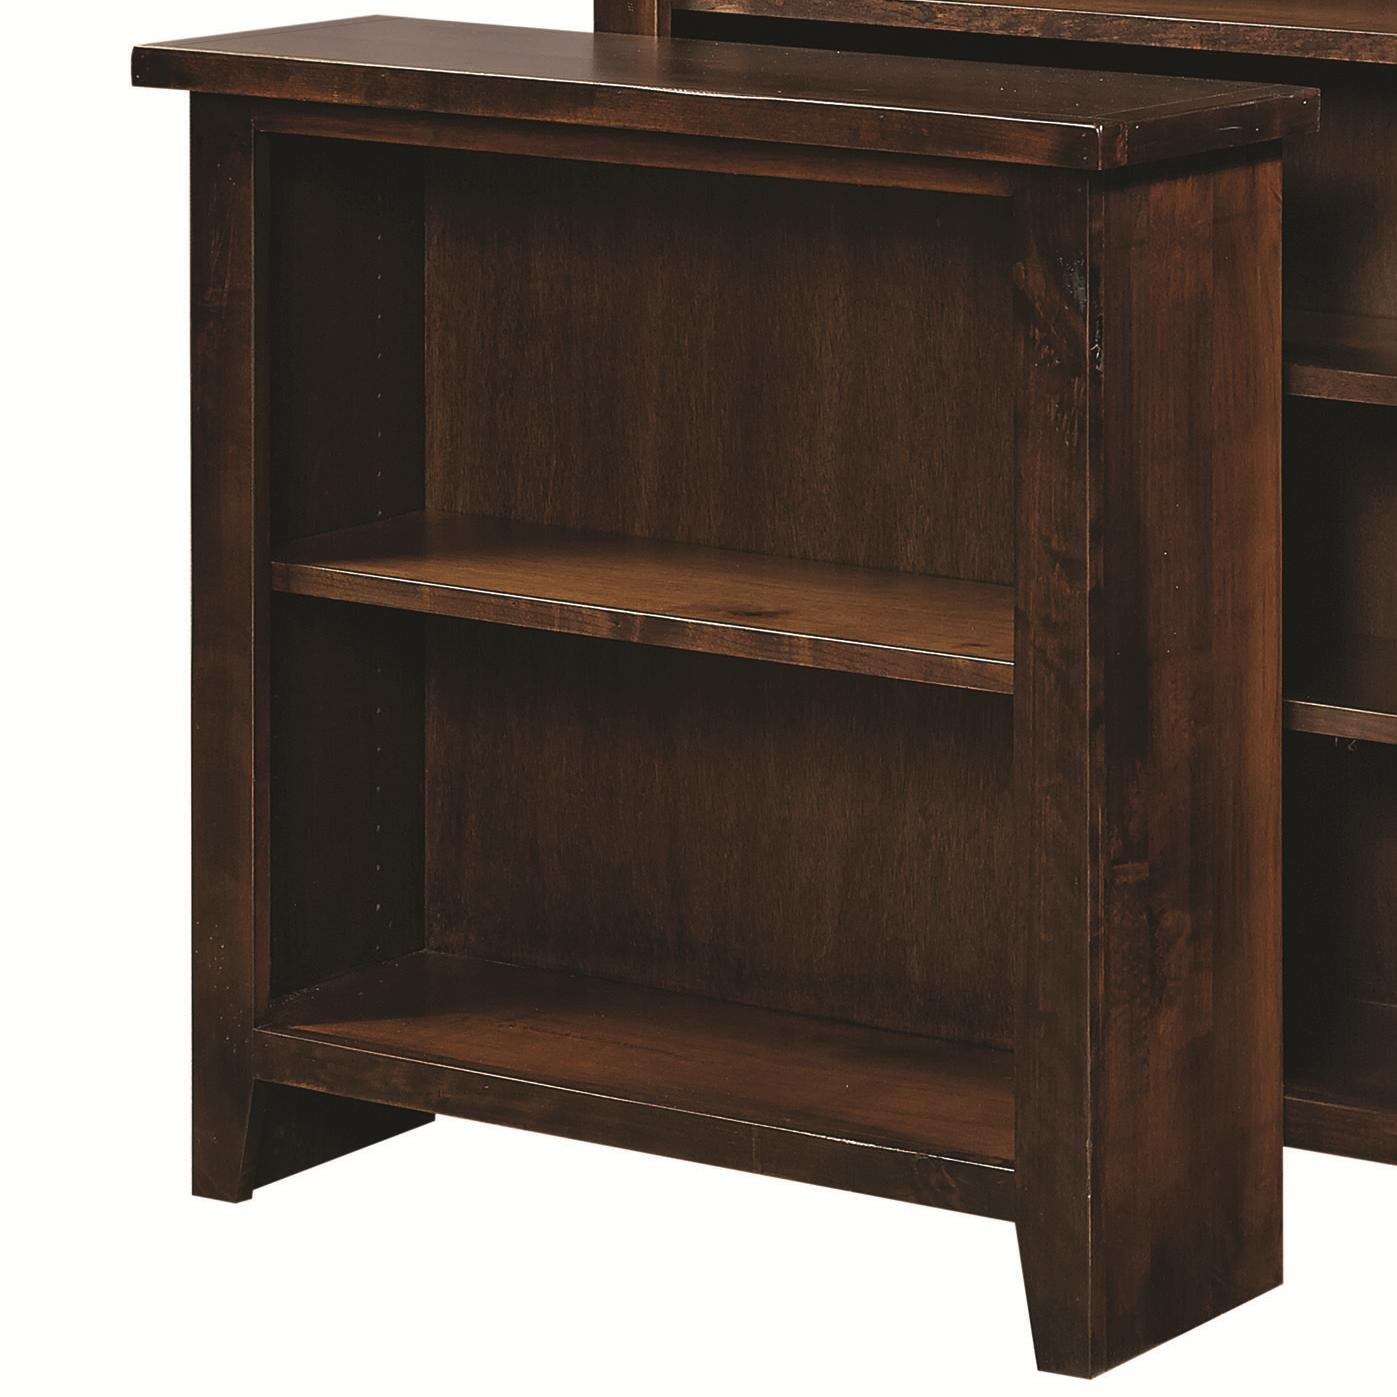 "Alder Grove 36"" Height Bookcase with 2 Shelves by Aspenhome at Baer's Furniture"